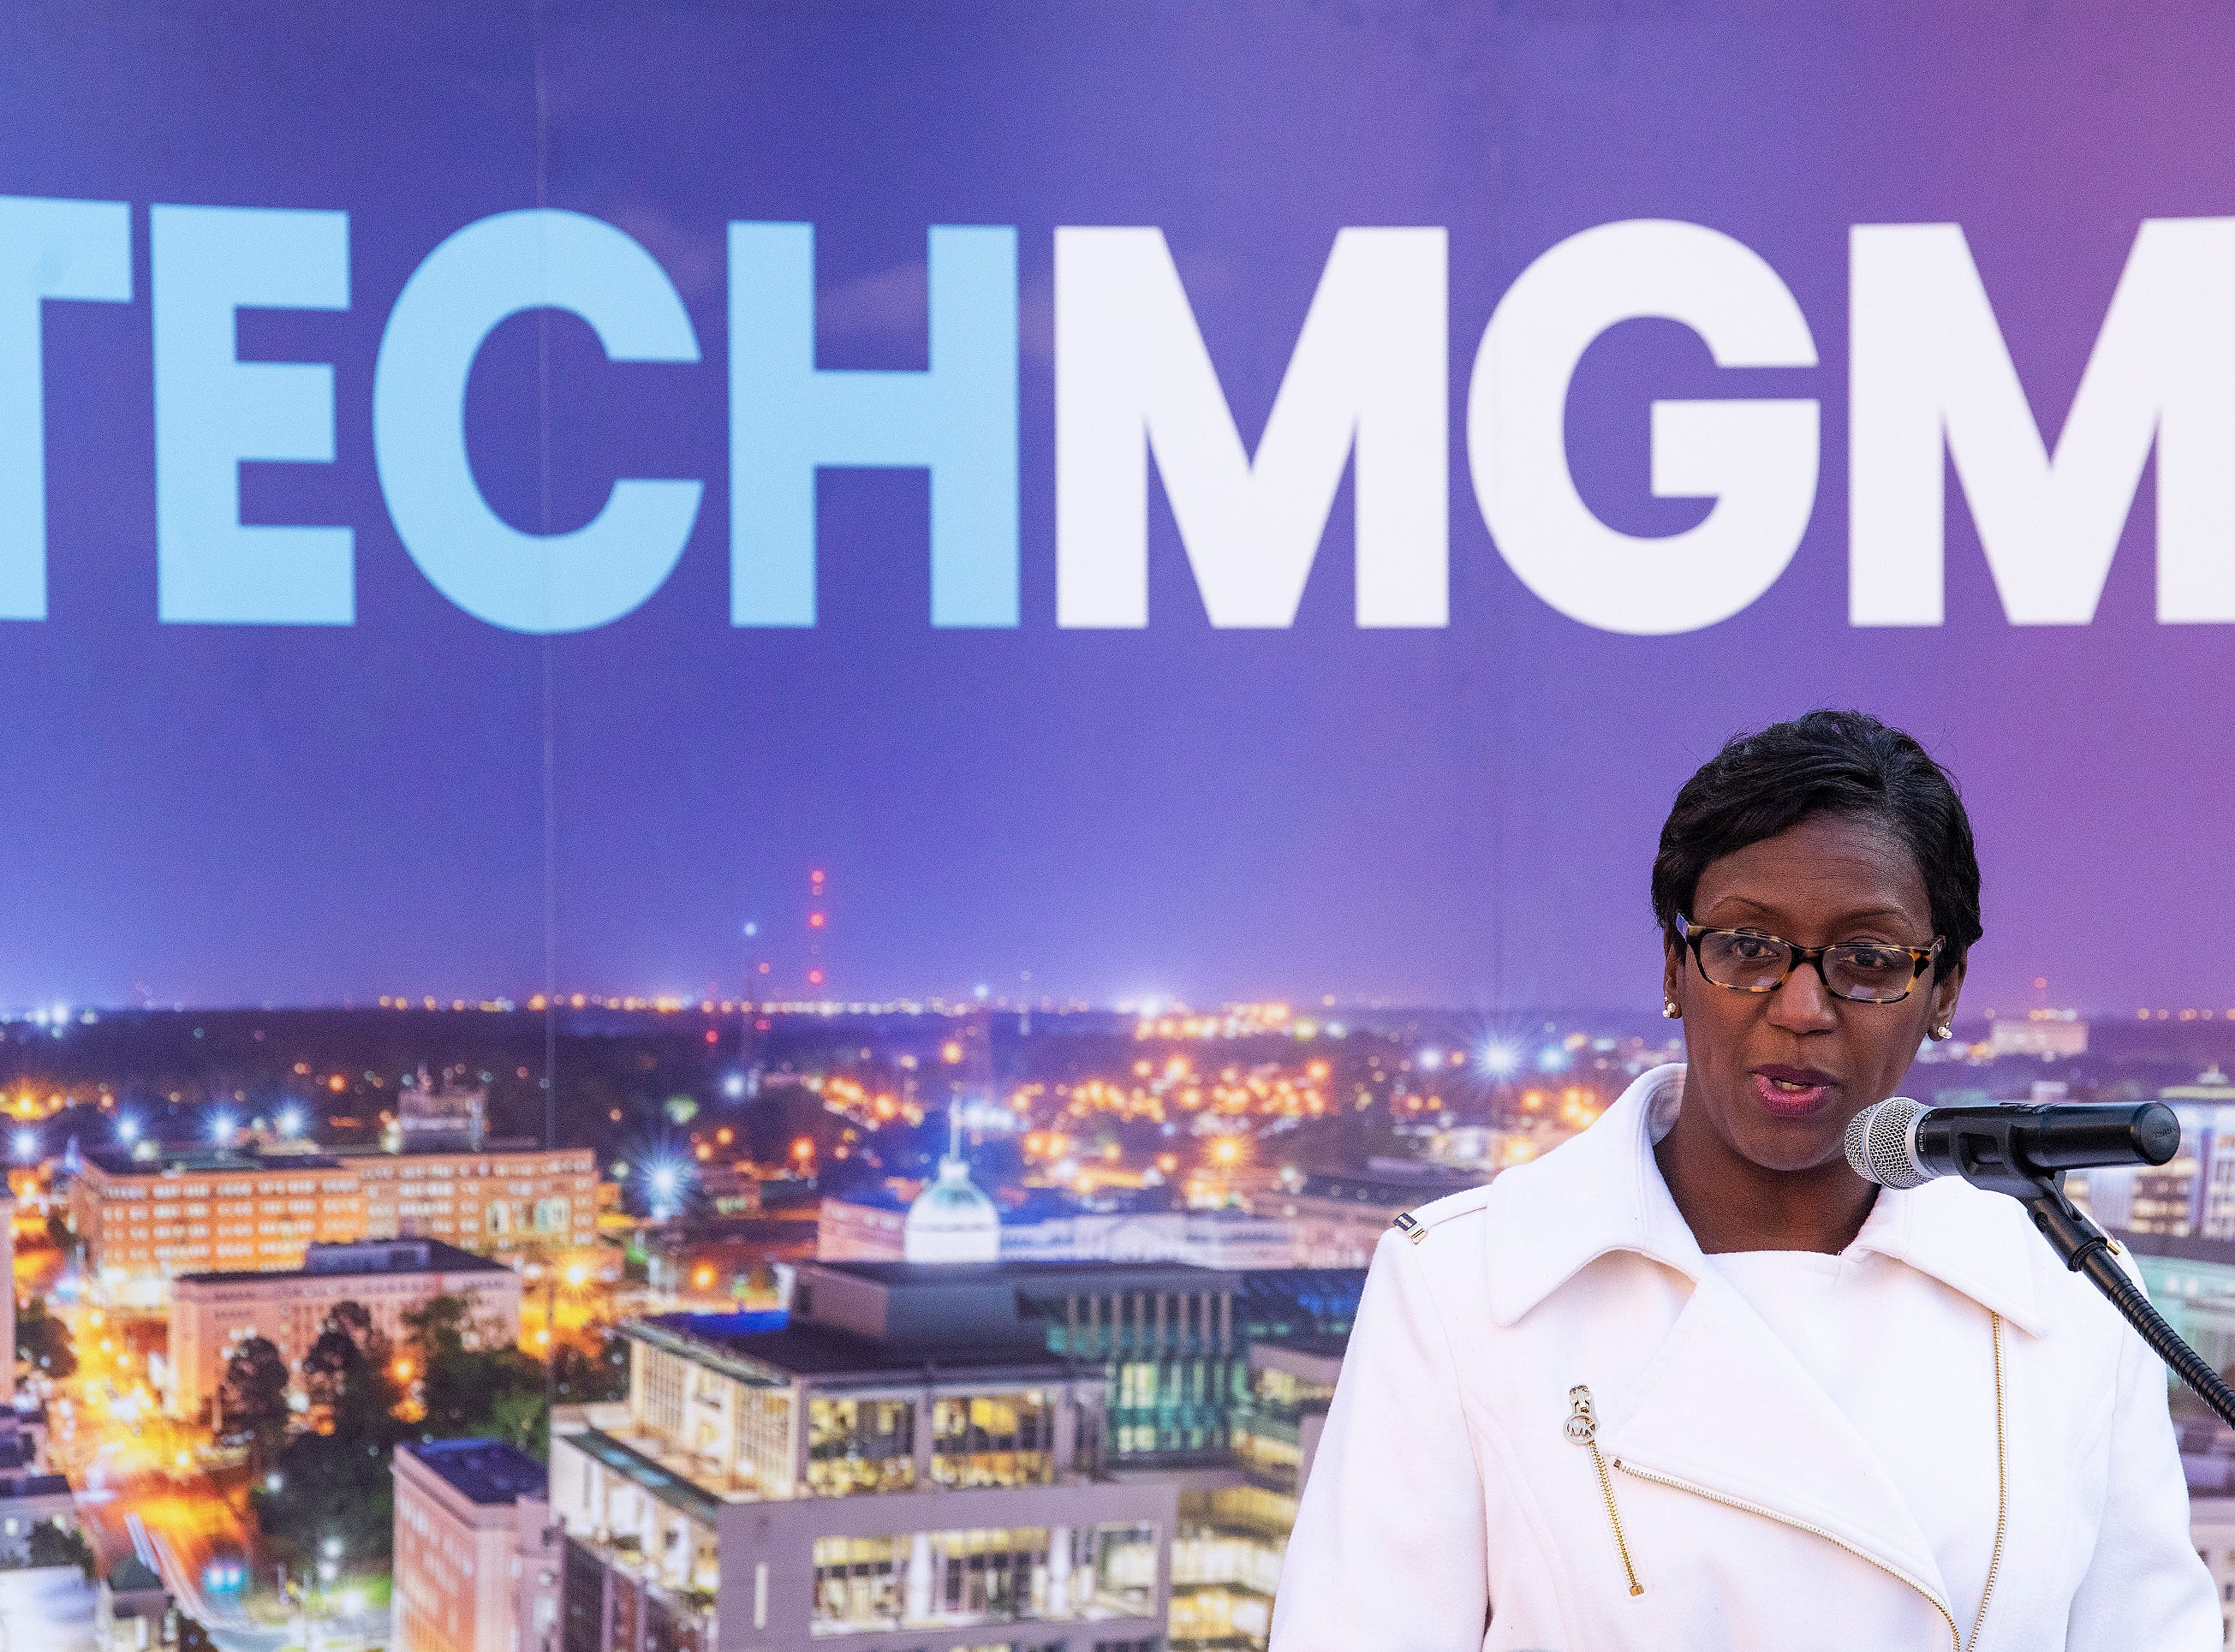 Charisse Stokes, Executive Director of TechMGM, speaks during the announcement of free 1GB WiFi and other tech improvements along the Commerce Street / Dexter Avenue corridor in downtown Montgomery, Ala., on Wednesday January 16, 2019.